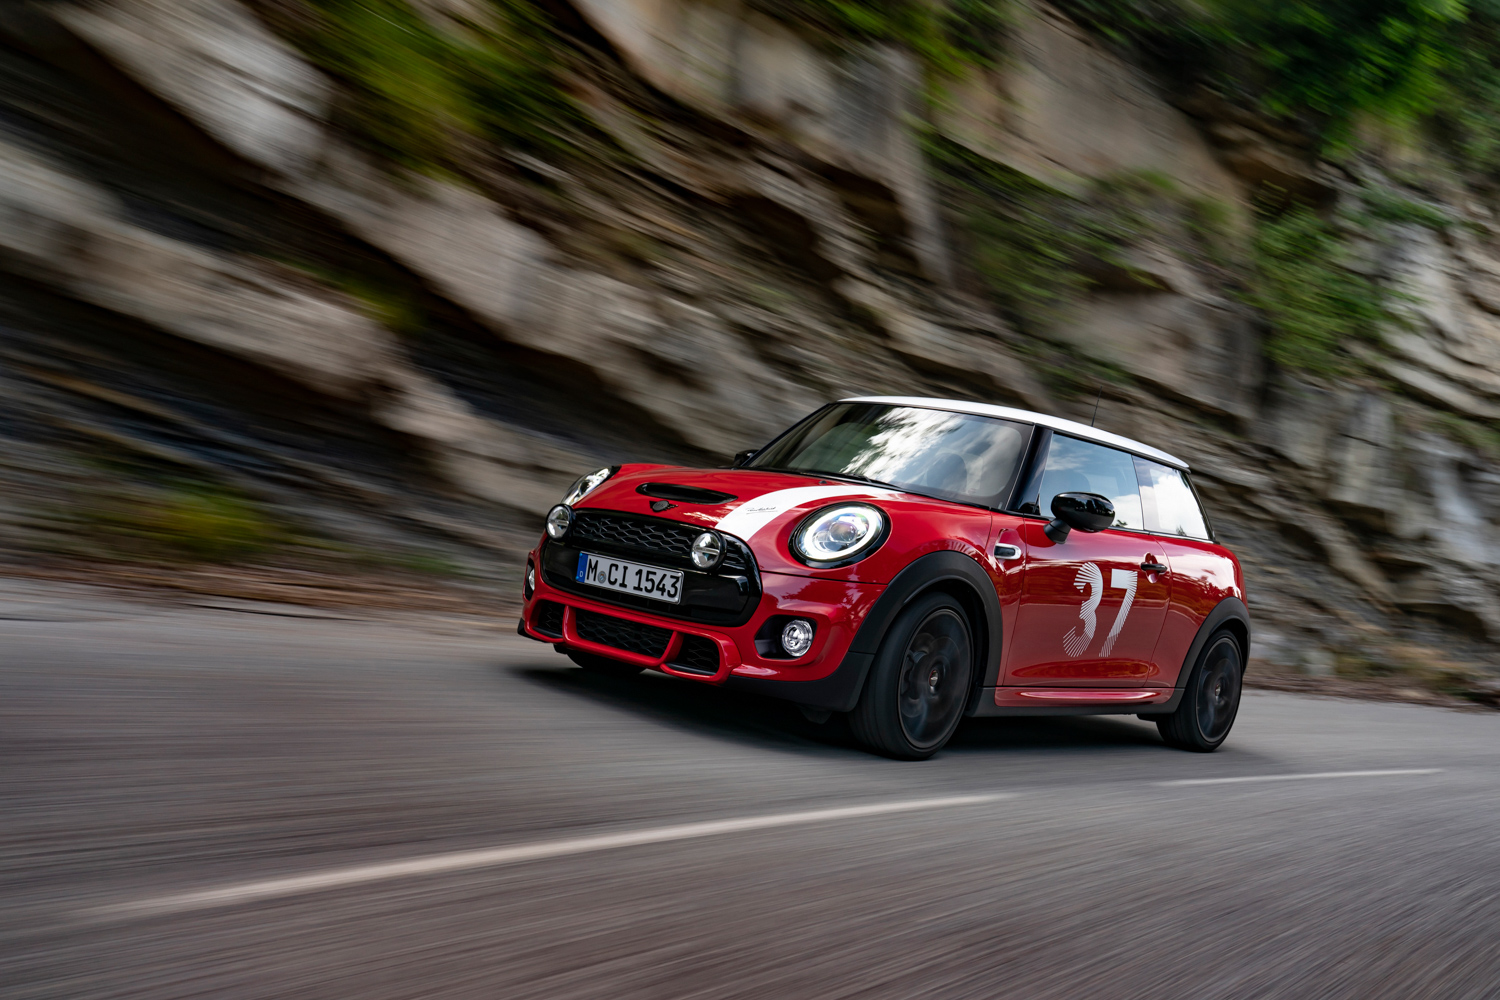 Car News | Paddy Hopkirk special edition MINI goes on sale | CompleteCar.ie